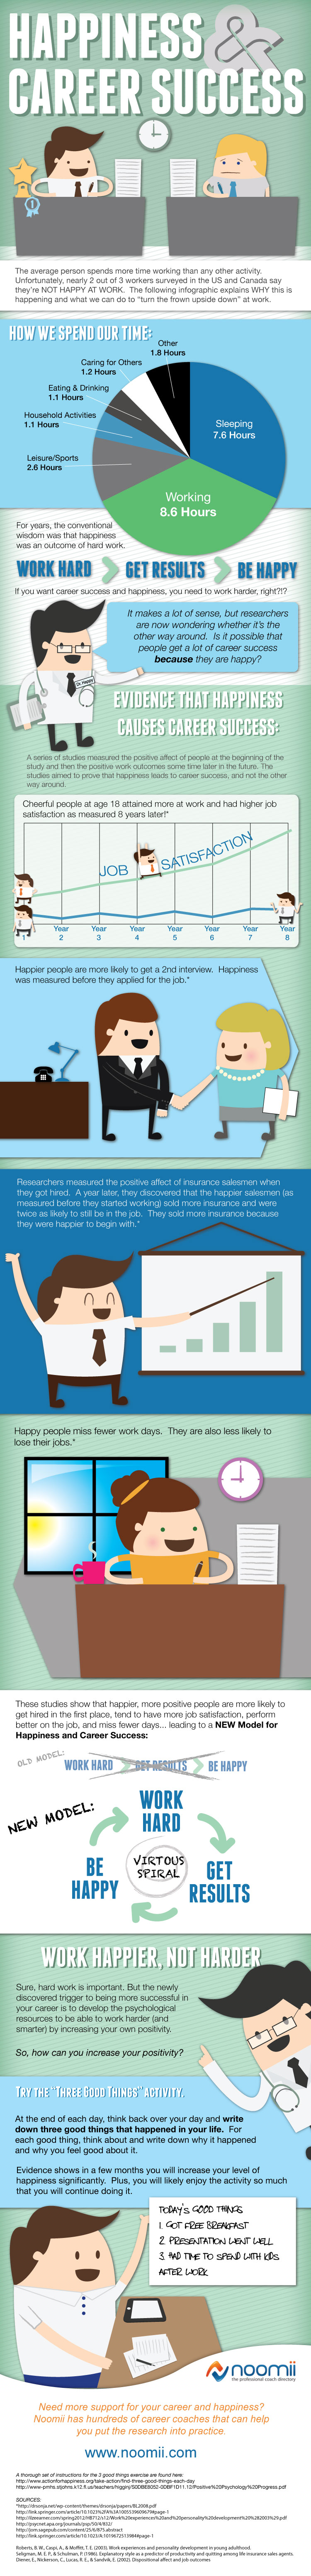 Career Success & Happiness Infographic